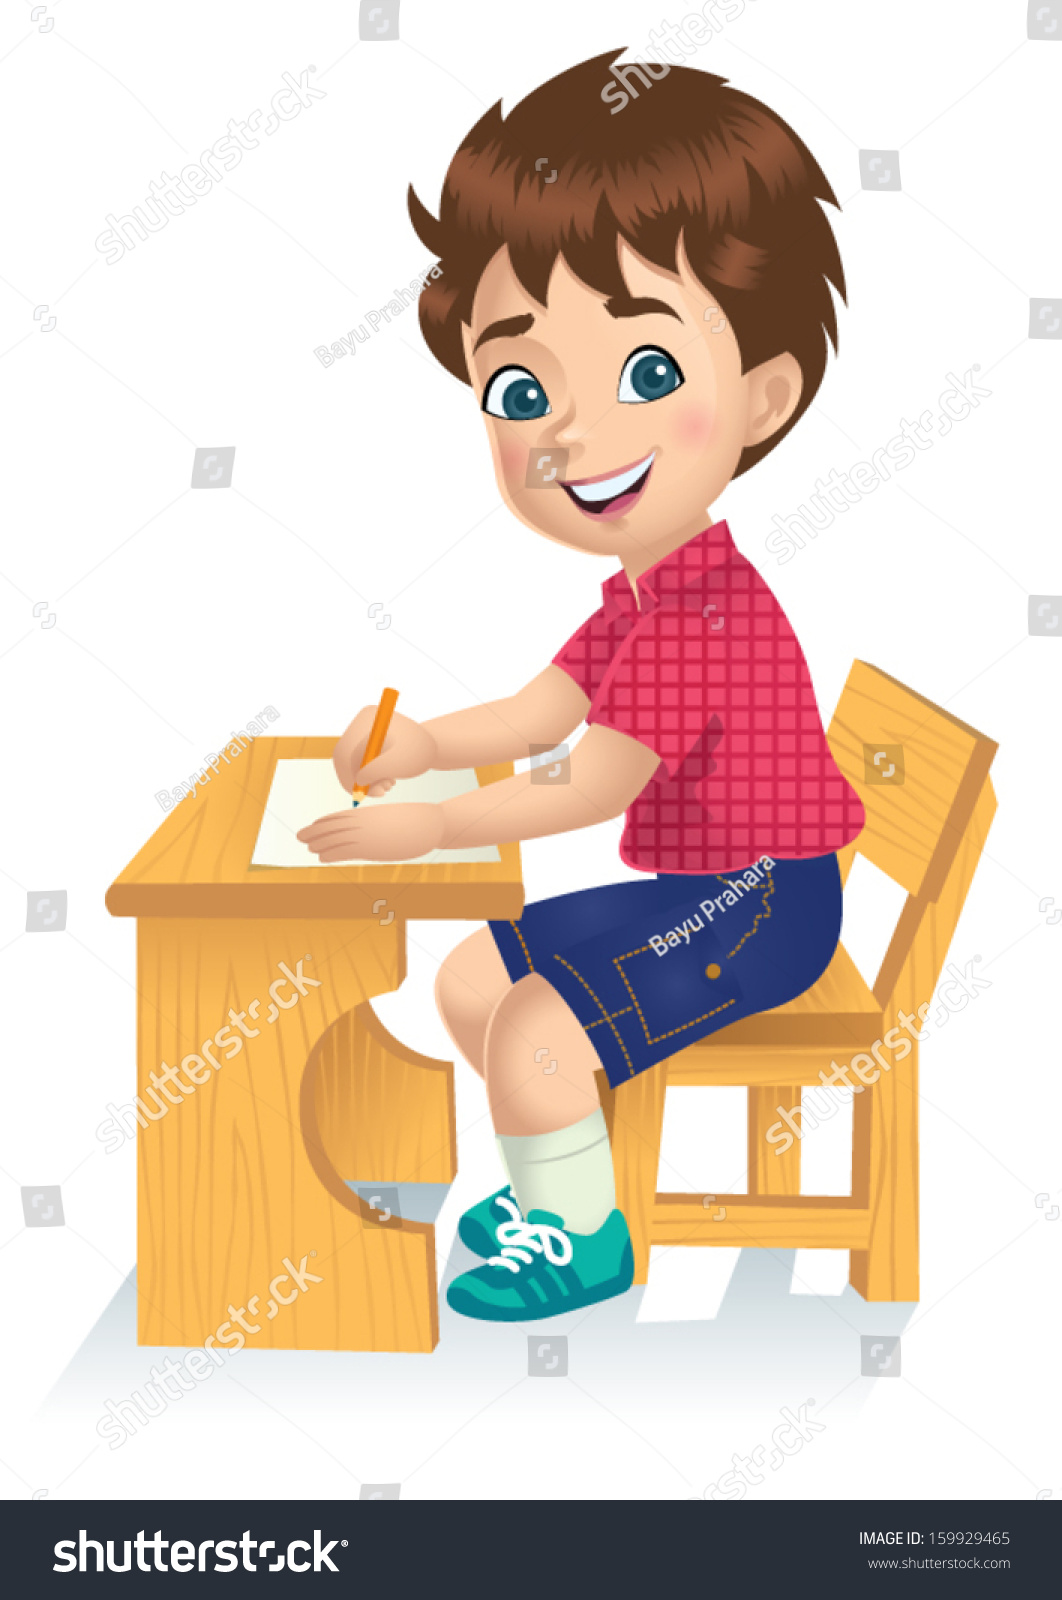 Boy writing animated